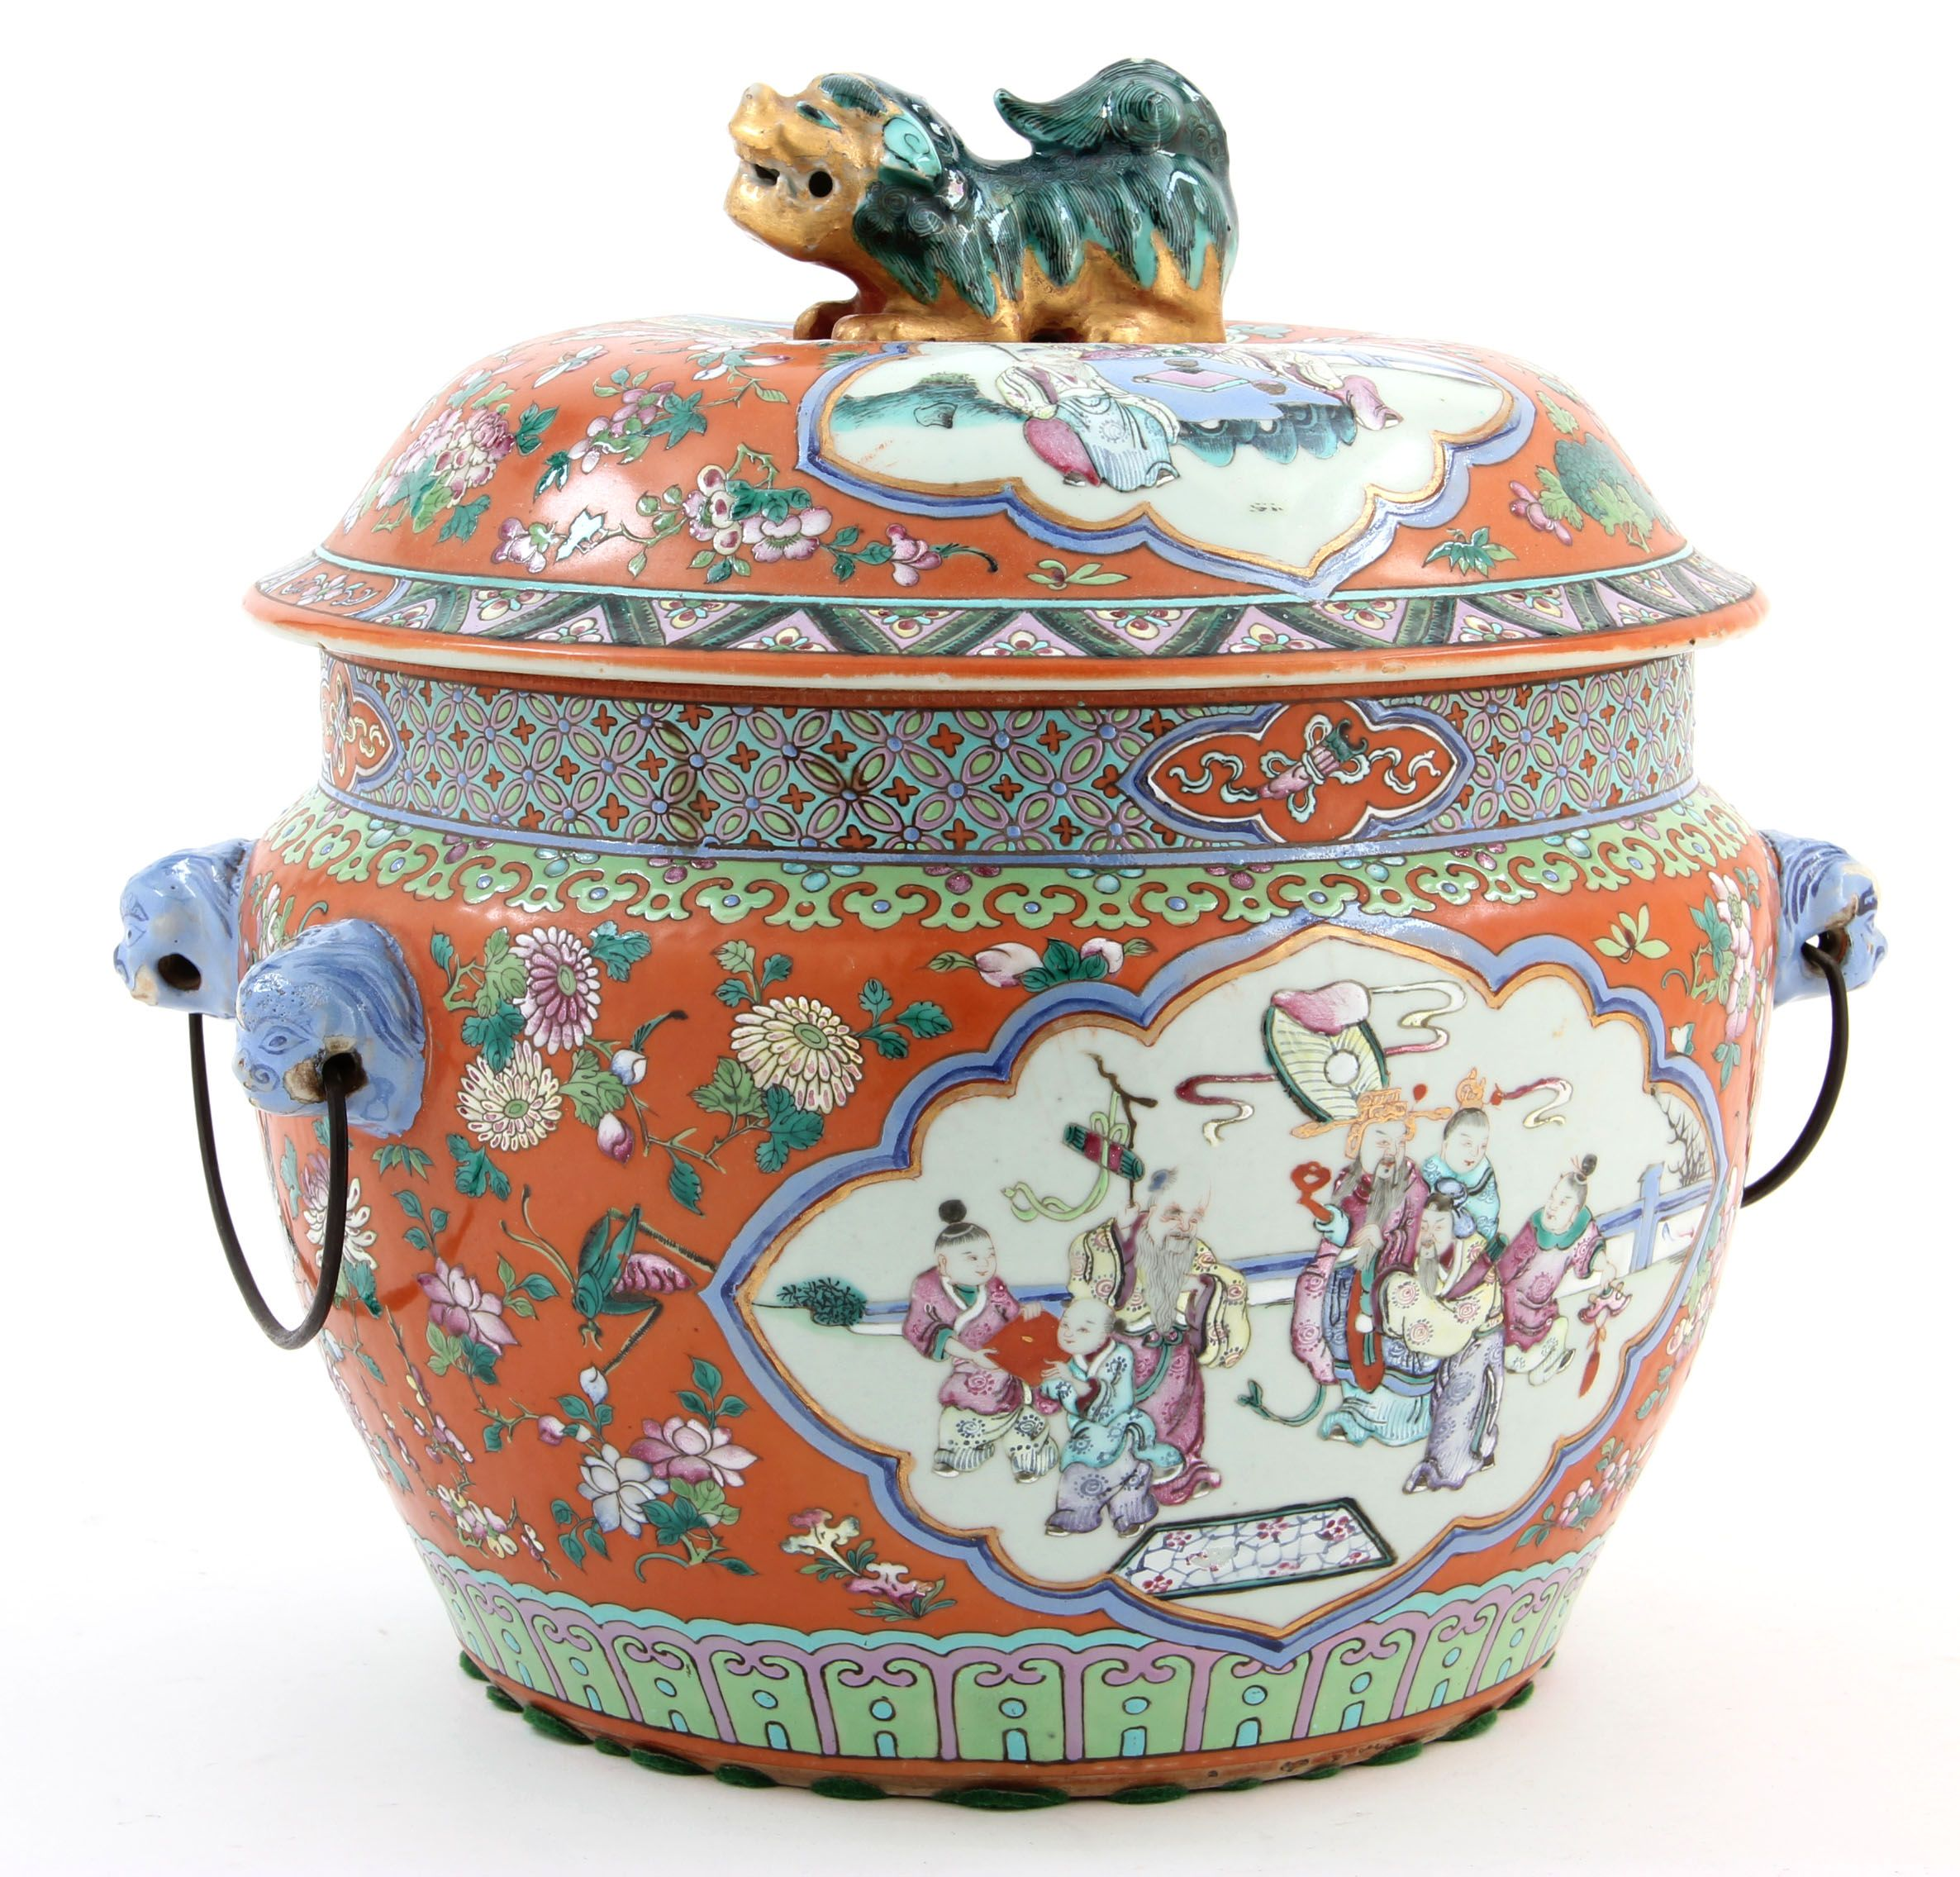 Straits Chinese Porcelain Kamcheng Cover Sold 13 000 Chinese Antiques Chinese Pottery Ancient Art